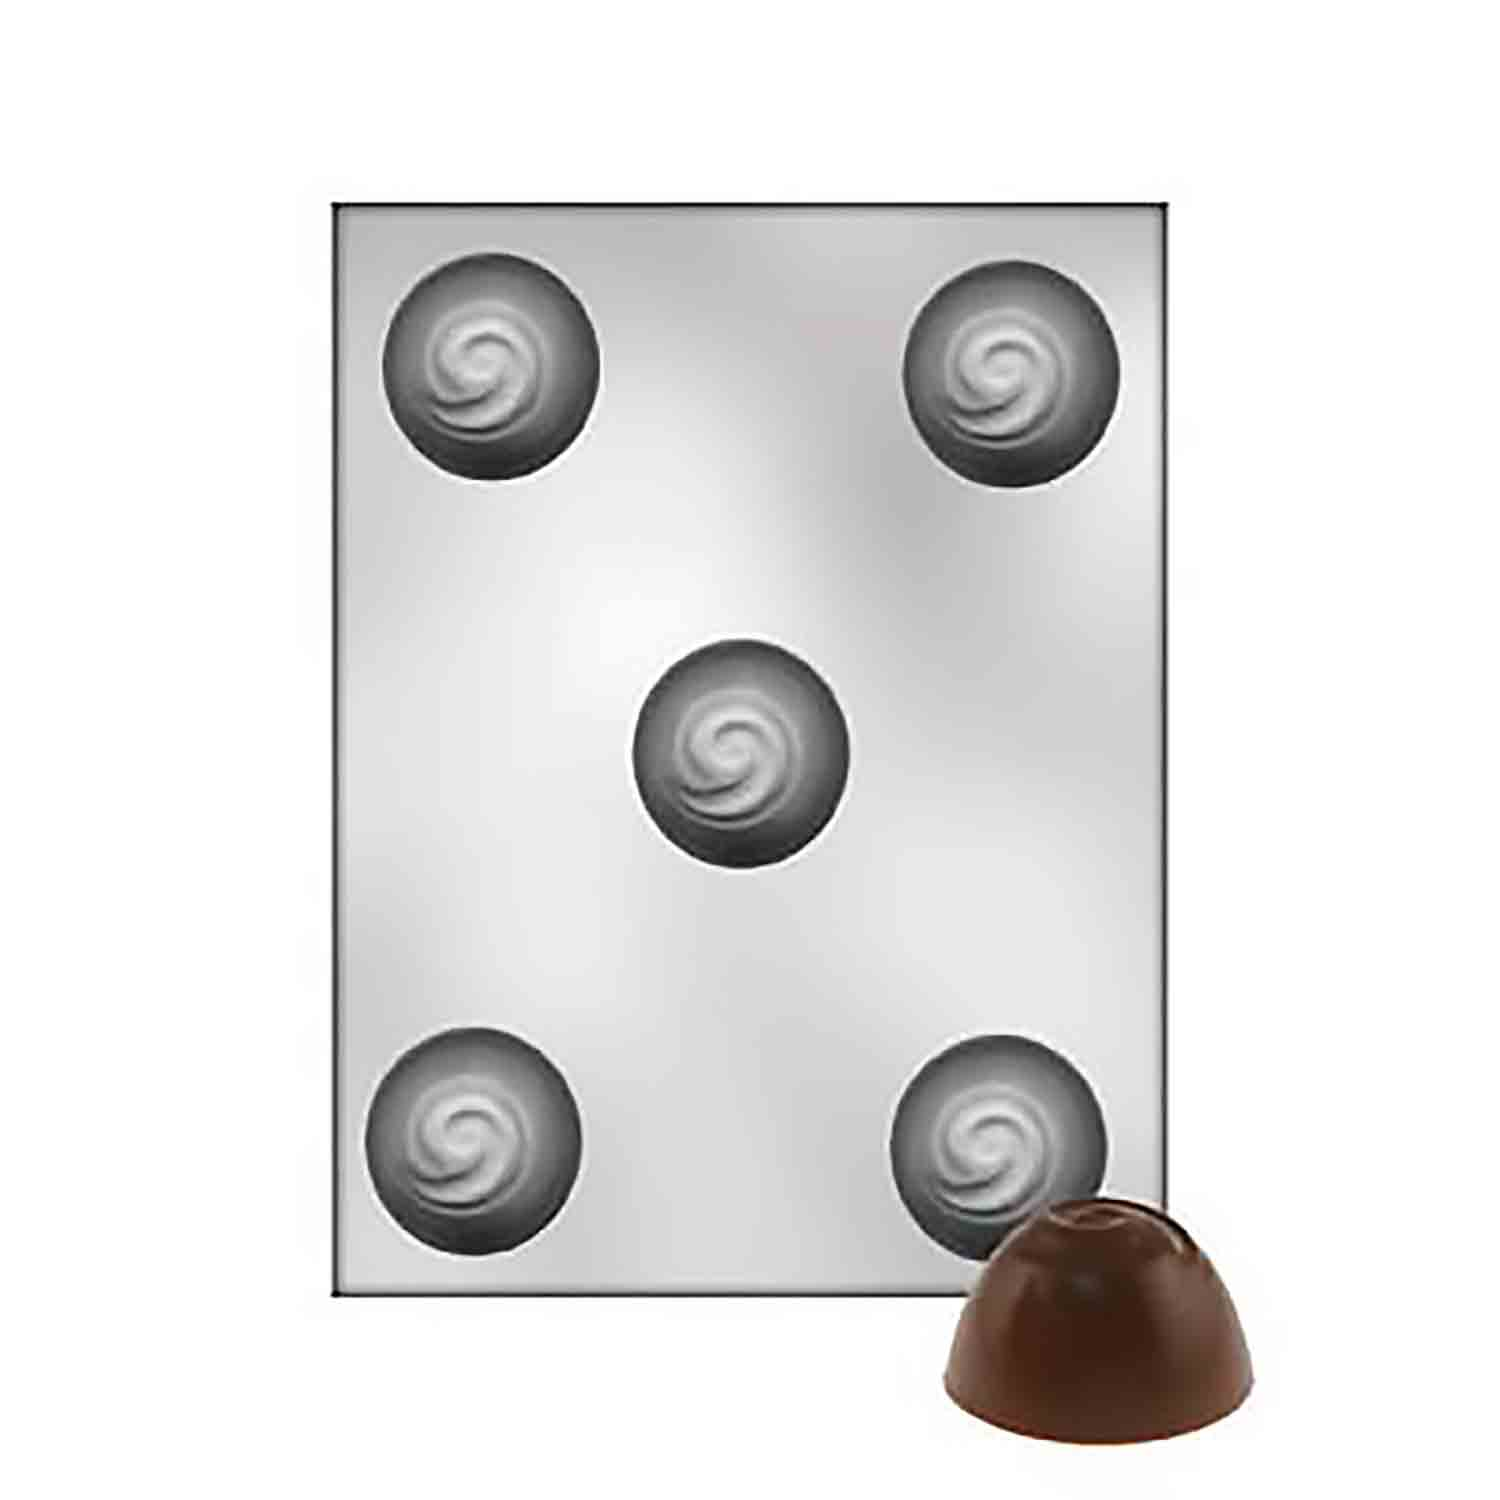 "1 3/4"" Truffle Chocolate Candy Mold"